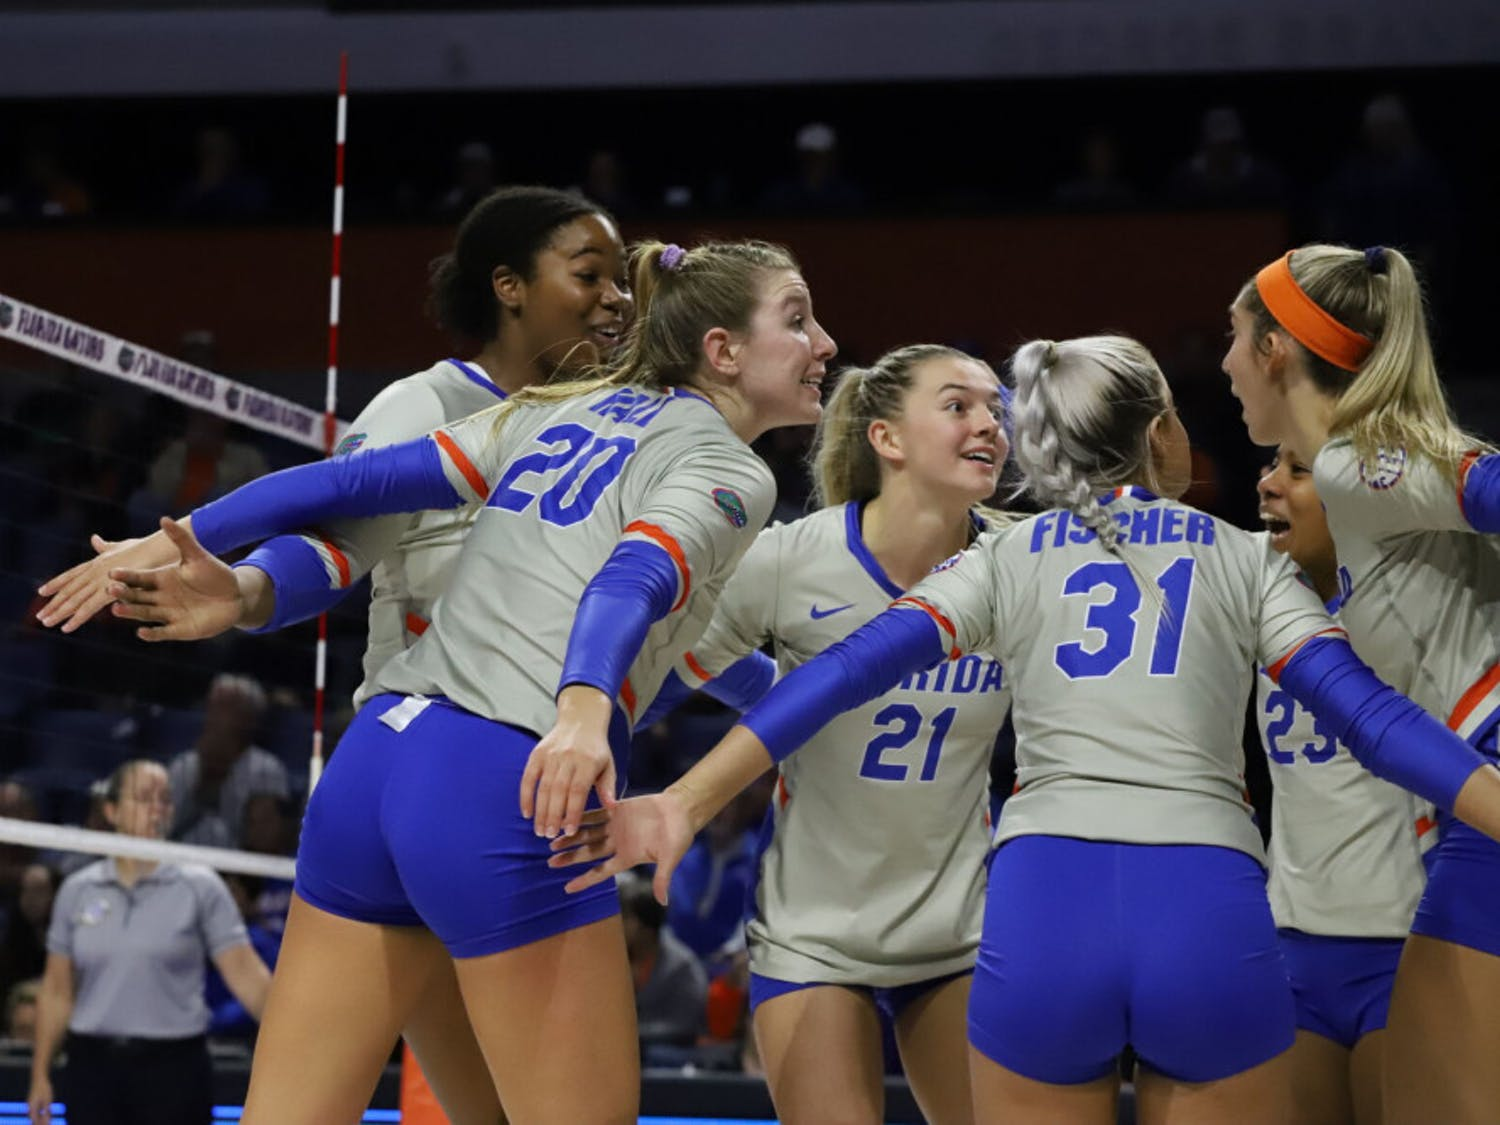 Florida crusied to a dominant victory over Arkansas Saturday.